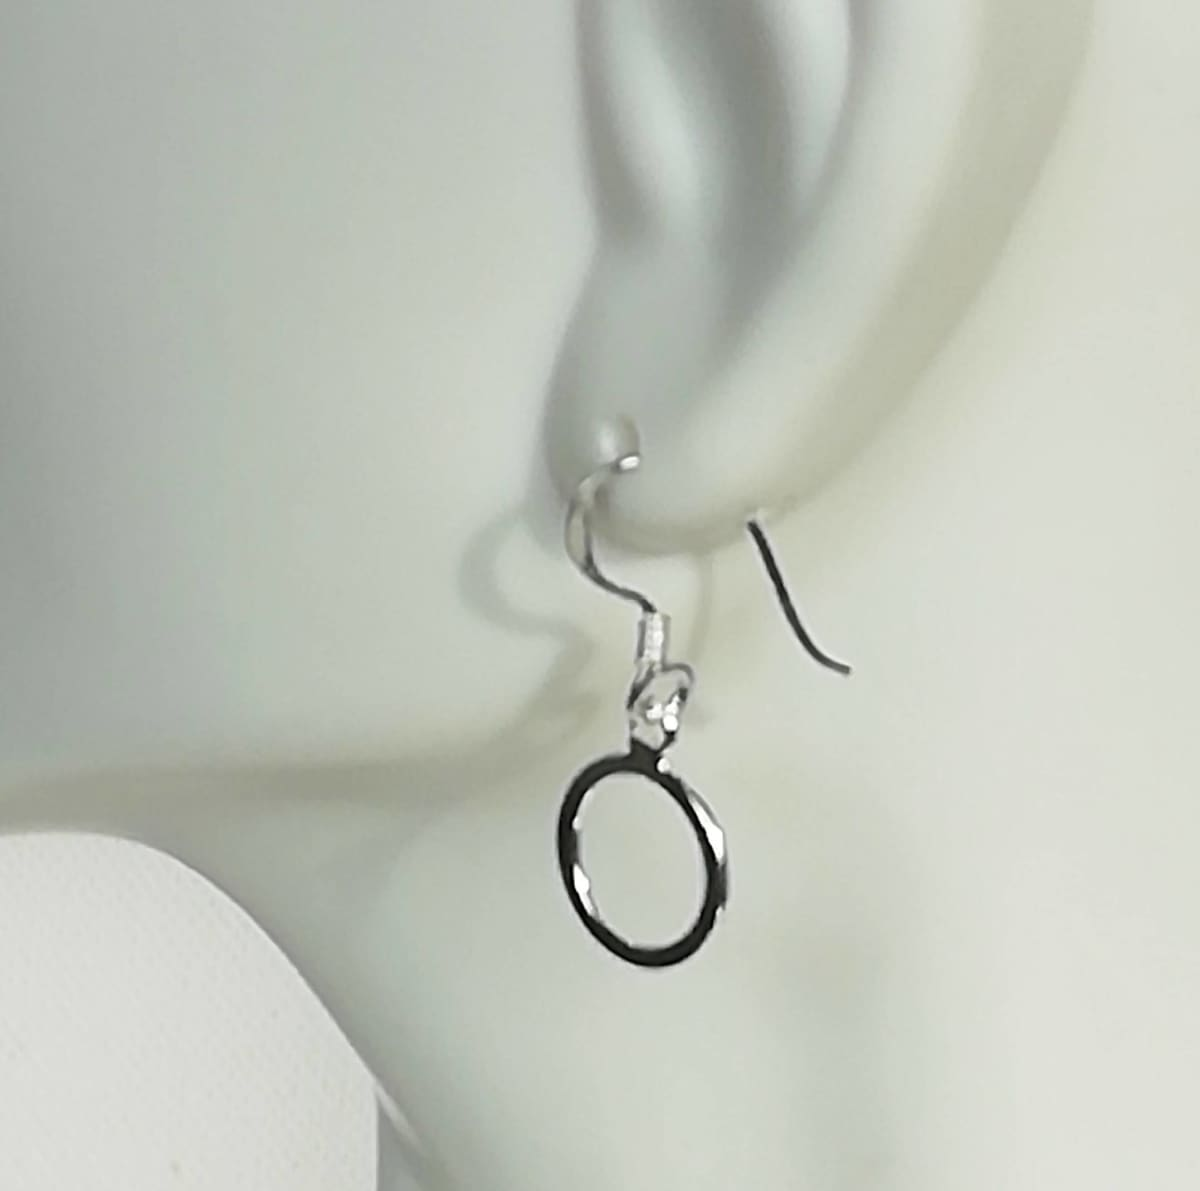 earrings Minimalist Earrings - Circle Of Life - Round Dangle - Silver - Wanderlust - Simple - G25 - by NeverEndingSilver